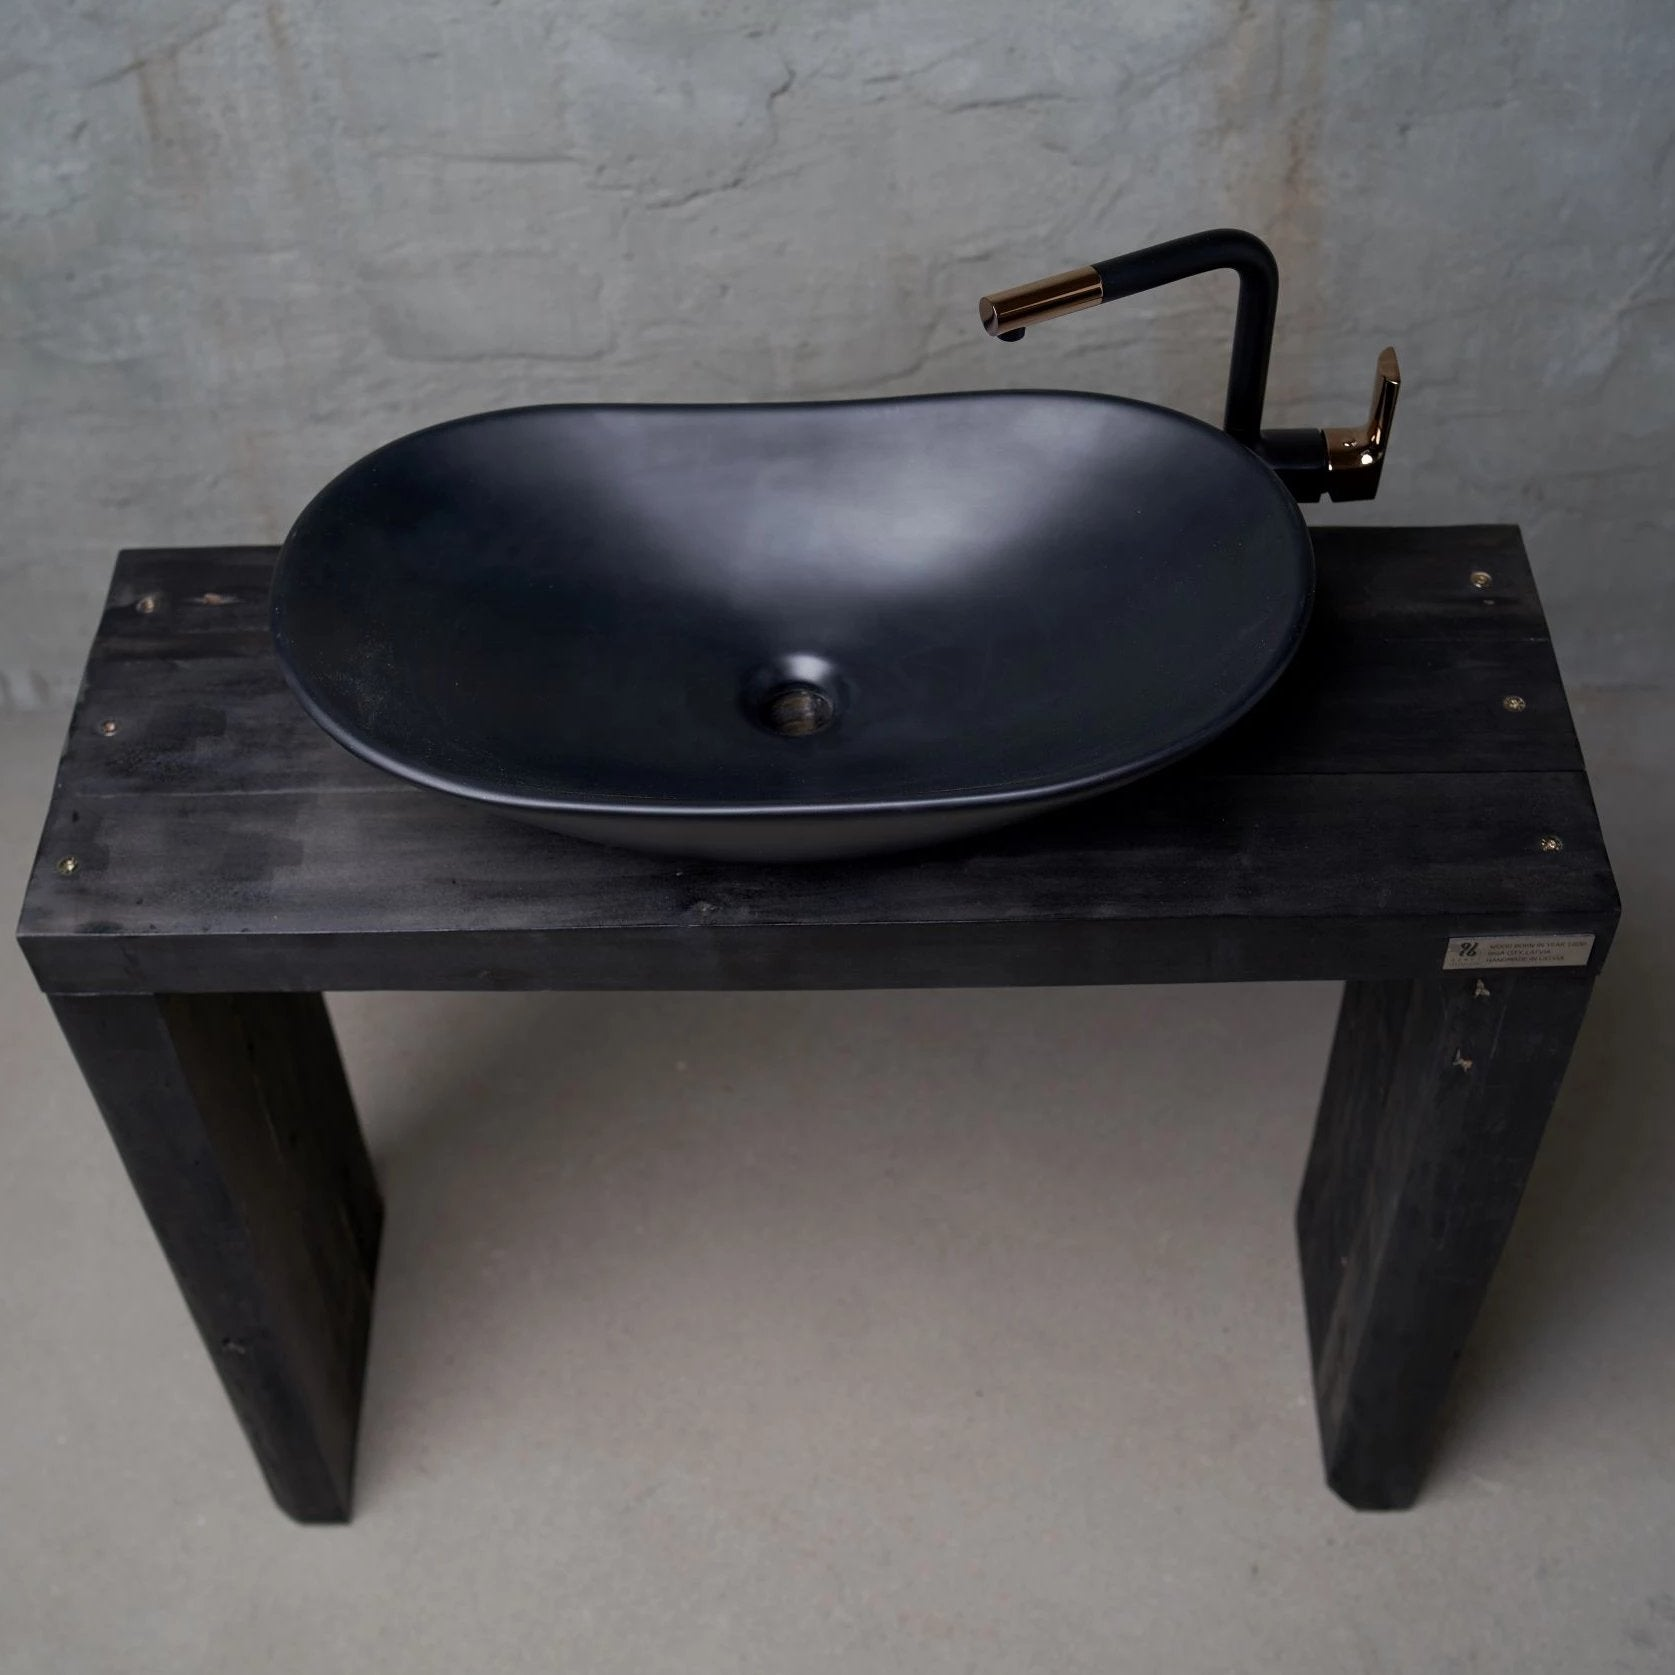 Bathroom vanity The Black Arch